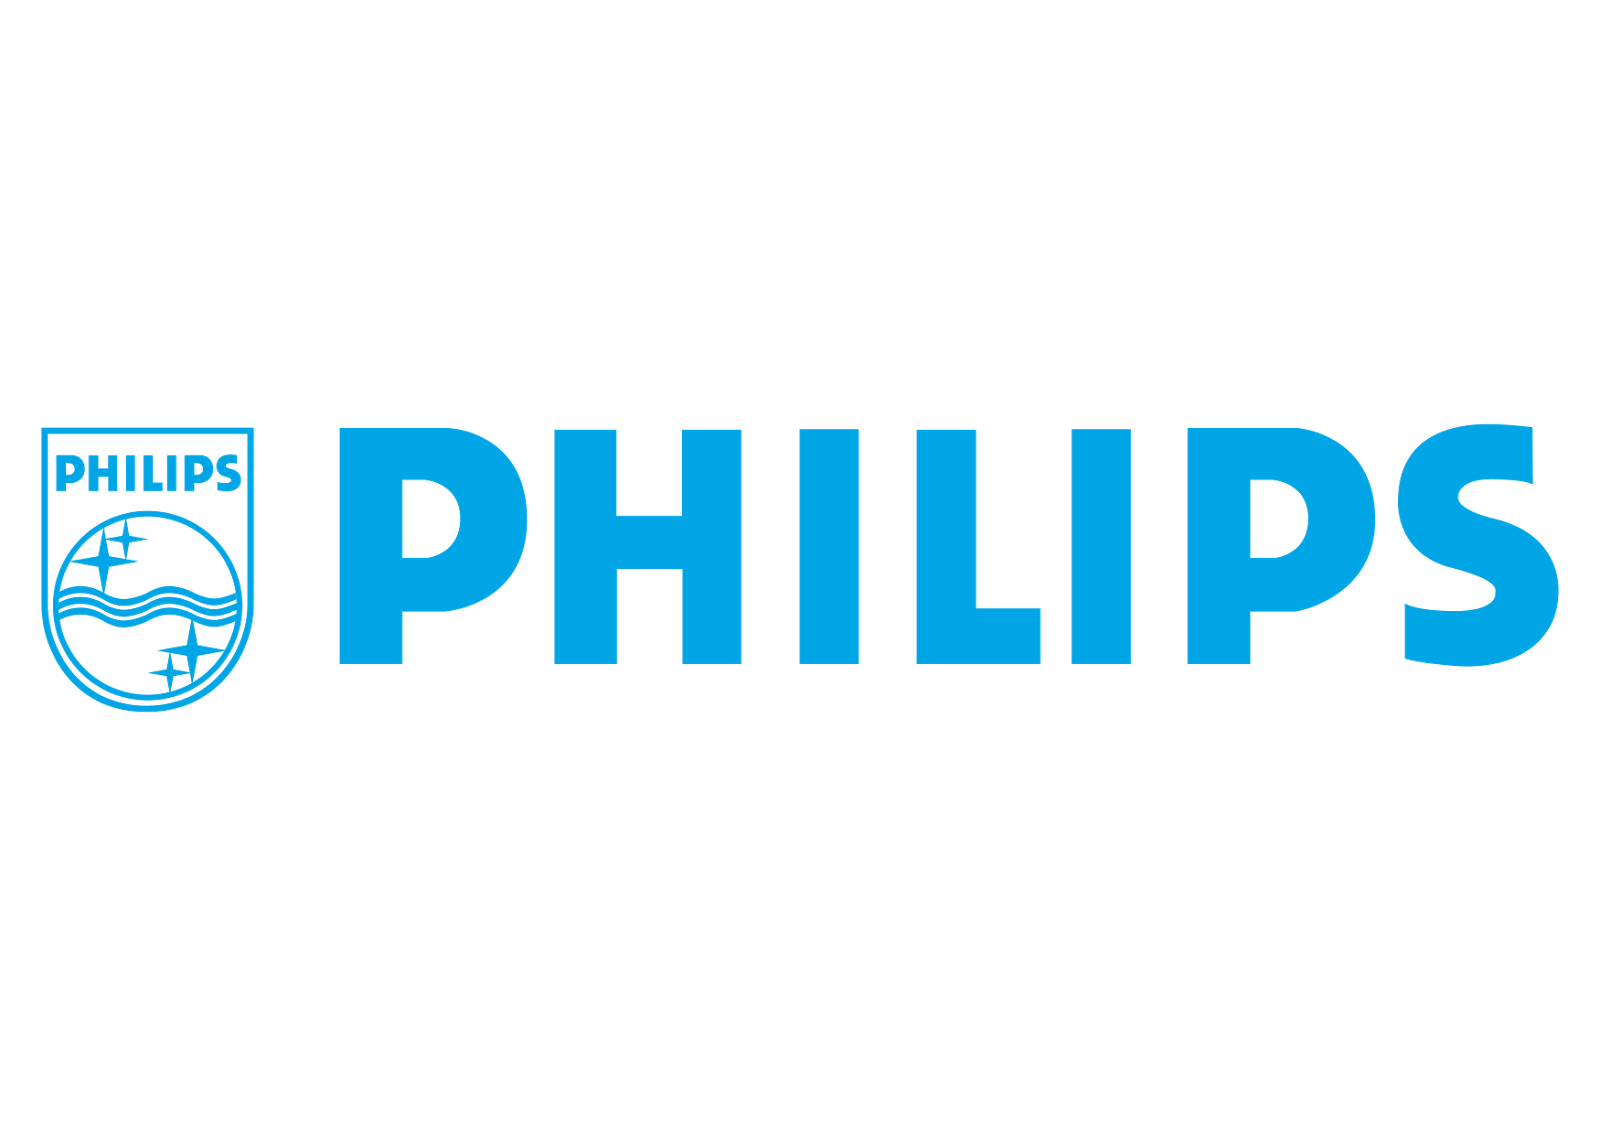 philips logo vector design part 2 format cdr ai eps. Black Bedroom Furniture Sets. Home Design Ideas